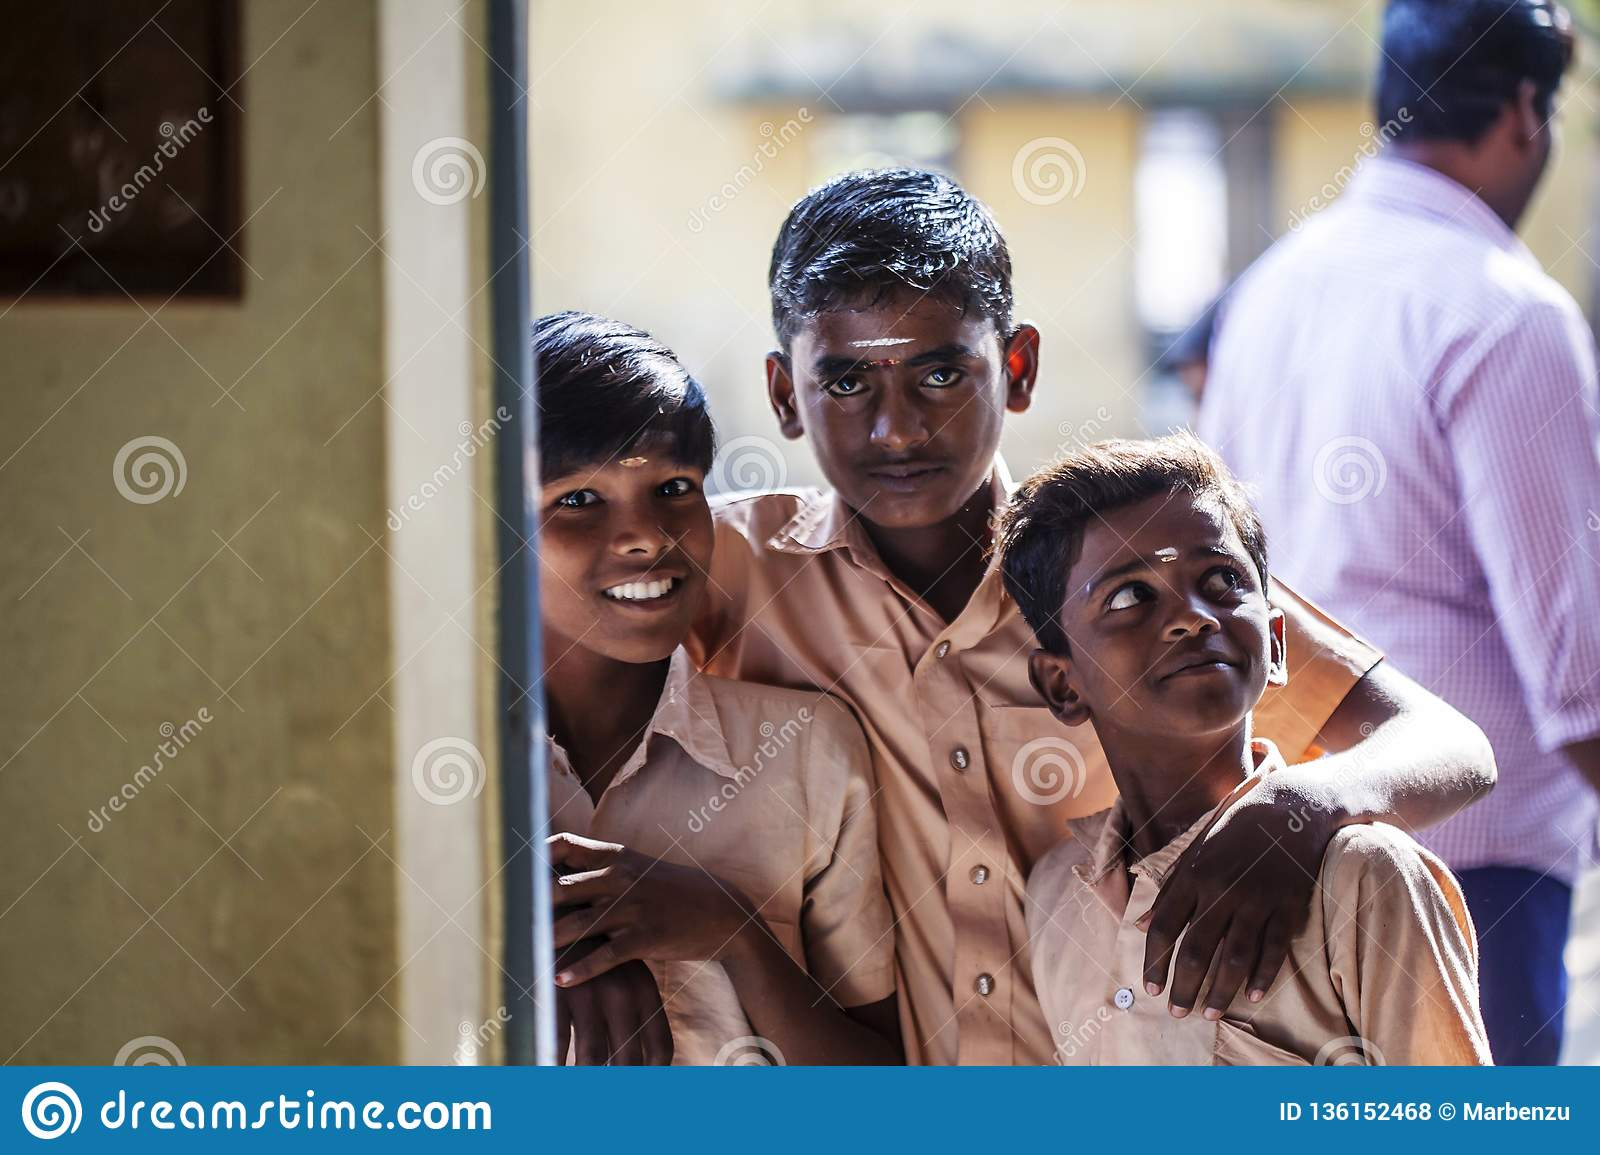 Indian Public school, children in school uniforms greeting new day